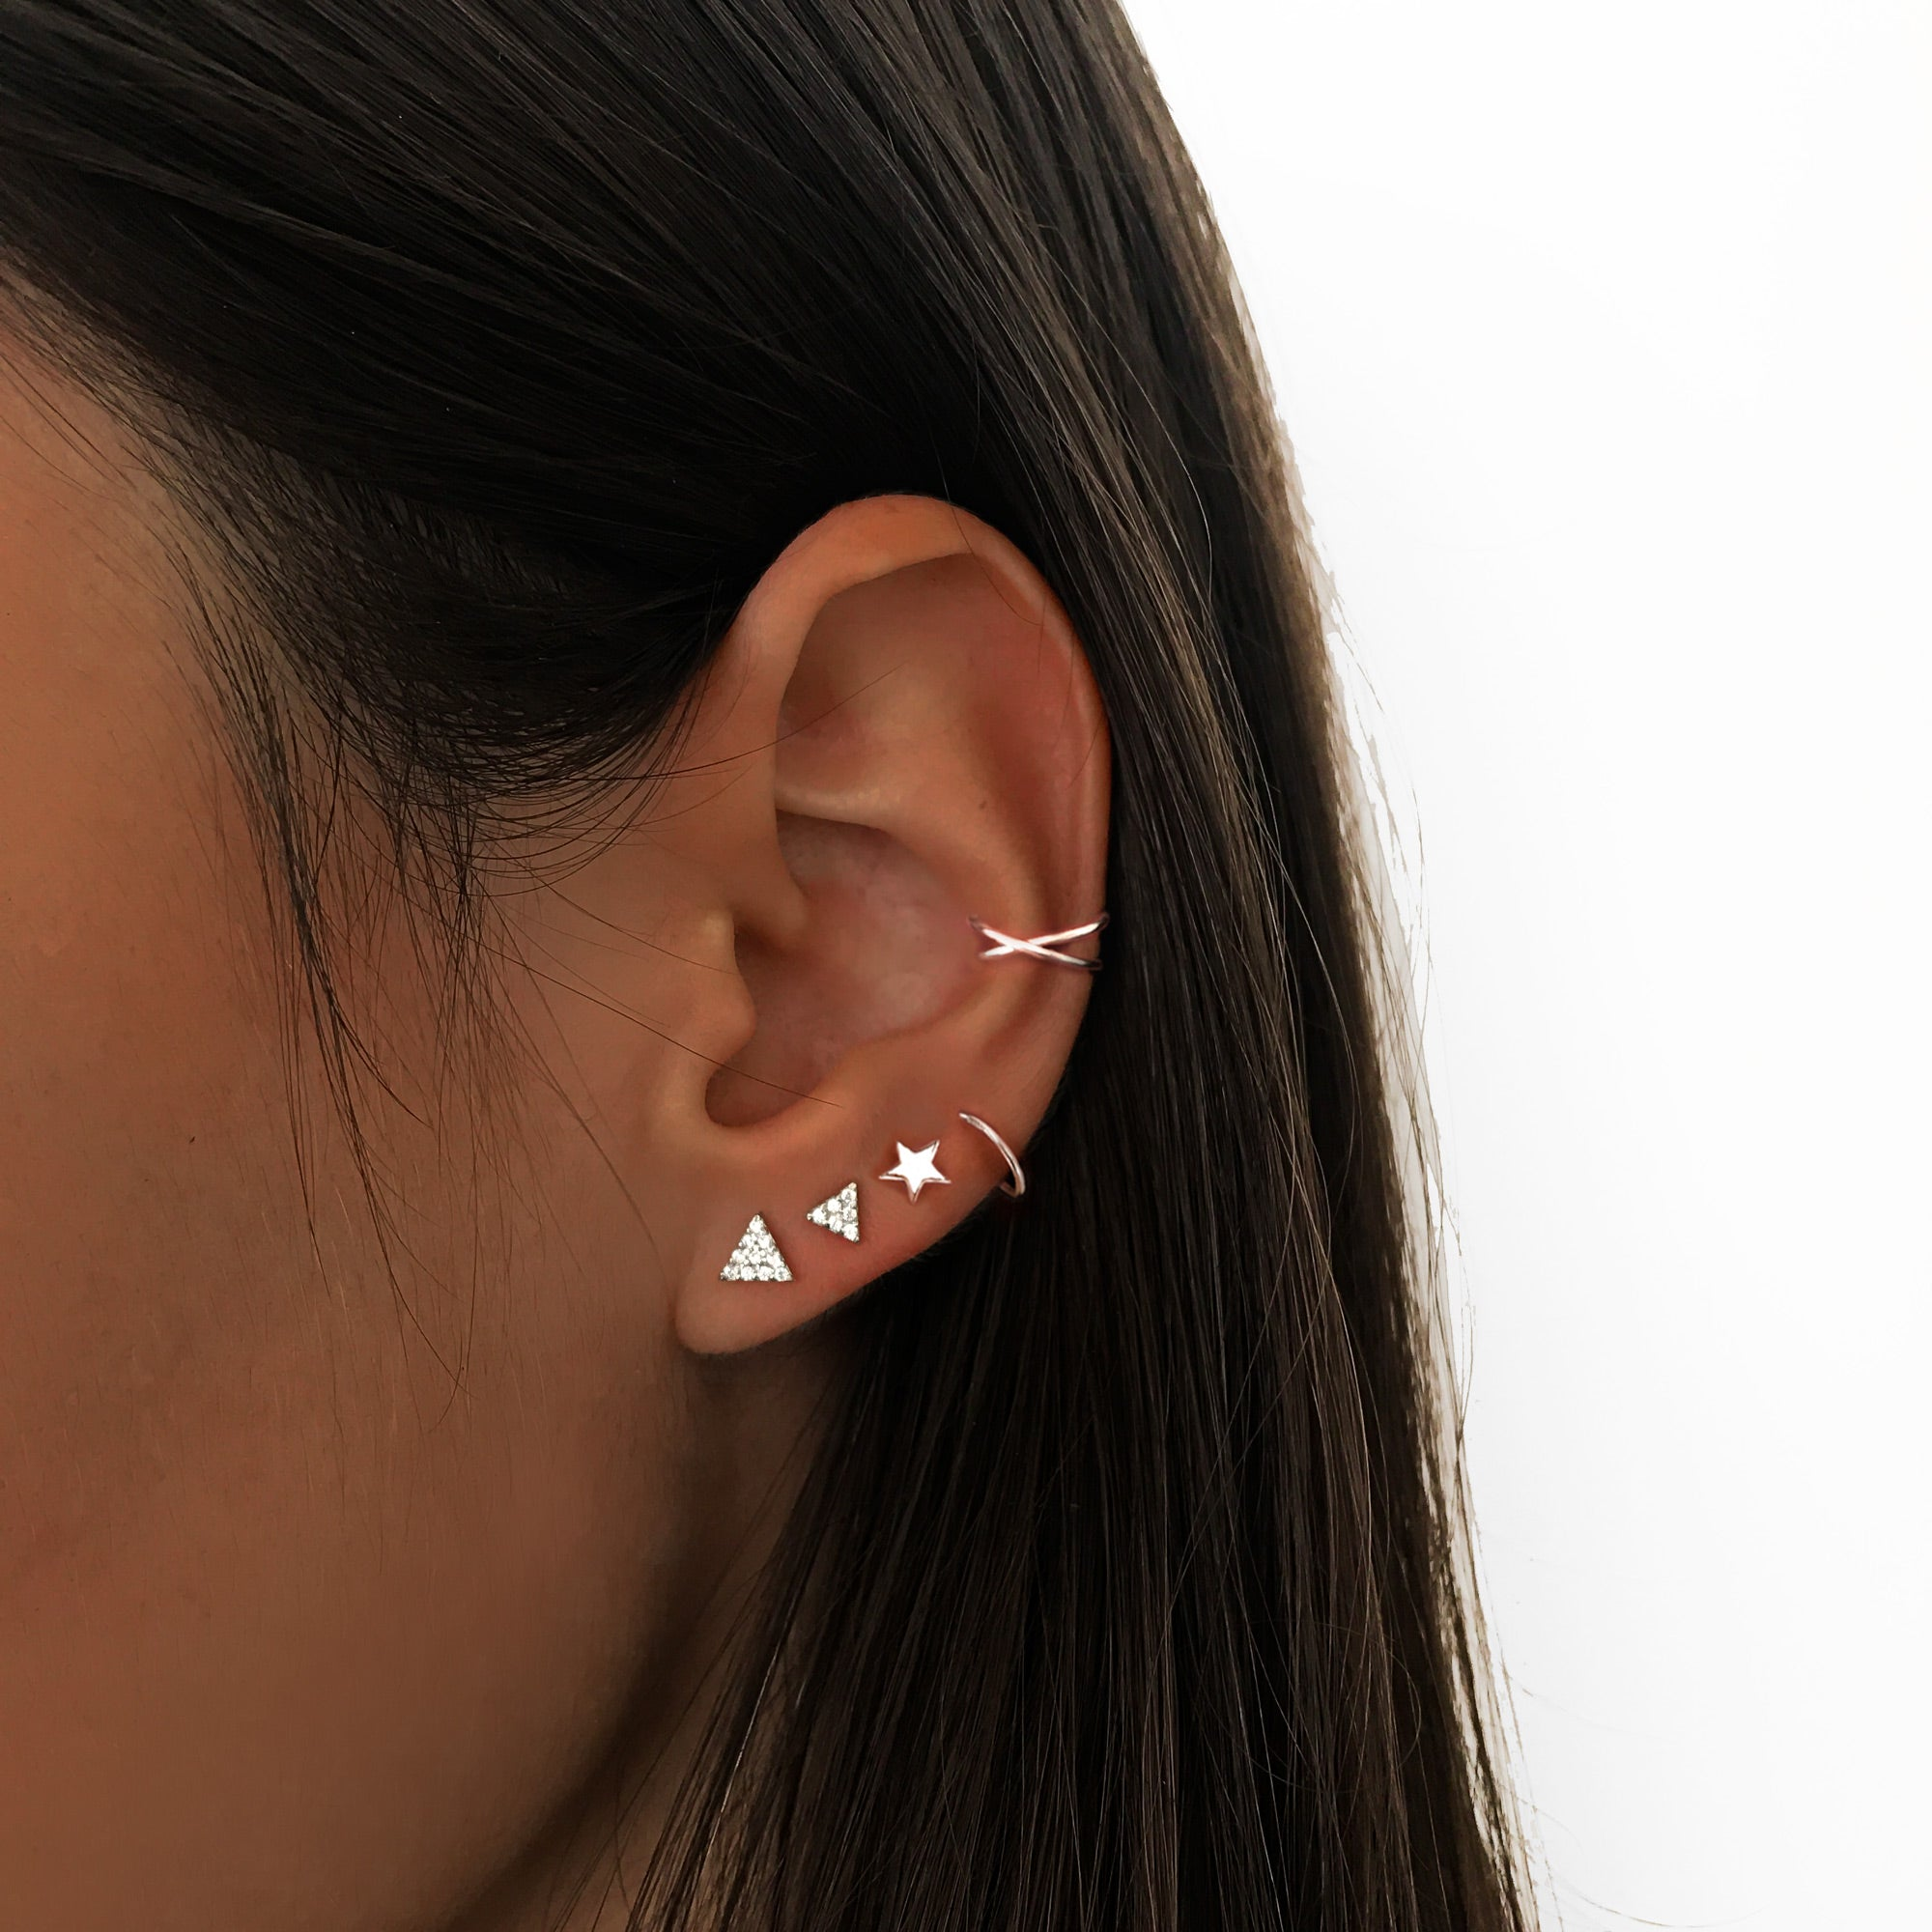 Pendientes Triangle AB Diamonds Plata combinado con el Pendiente Spiral Star e Ear Cuff Cross